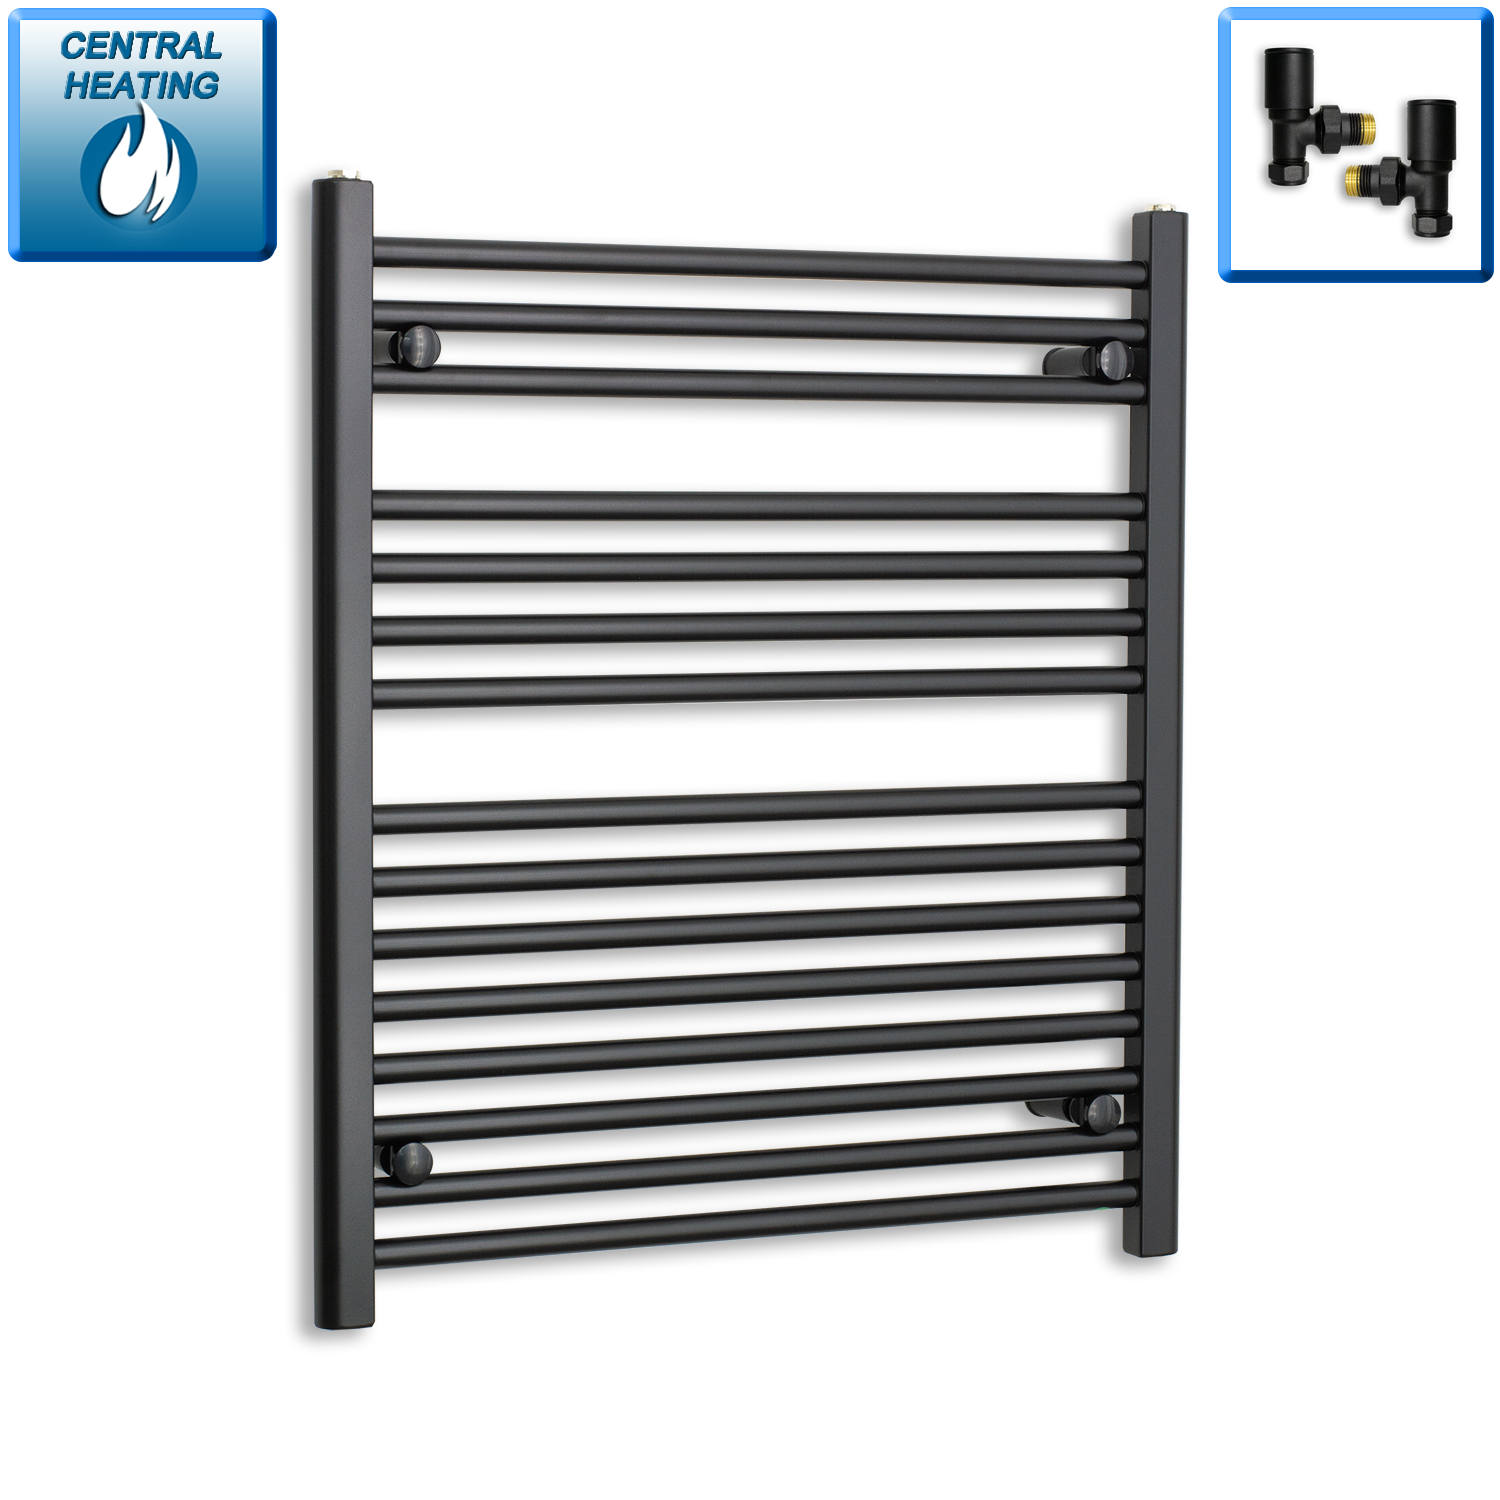 700mm Wide 800mm High Black Towel Rail Radiator With Angled Valve